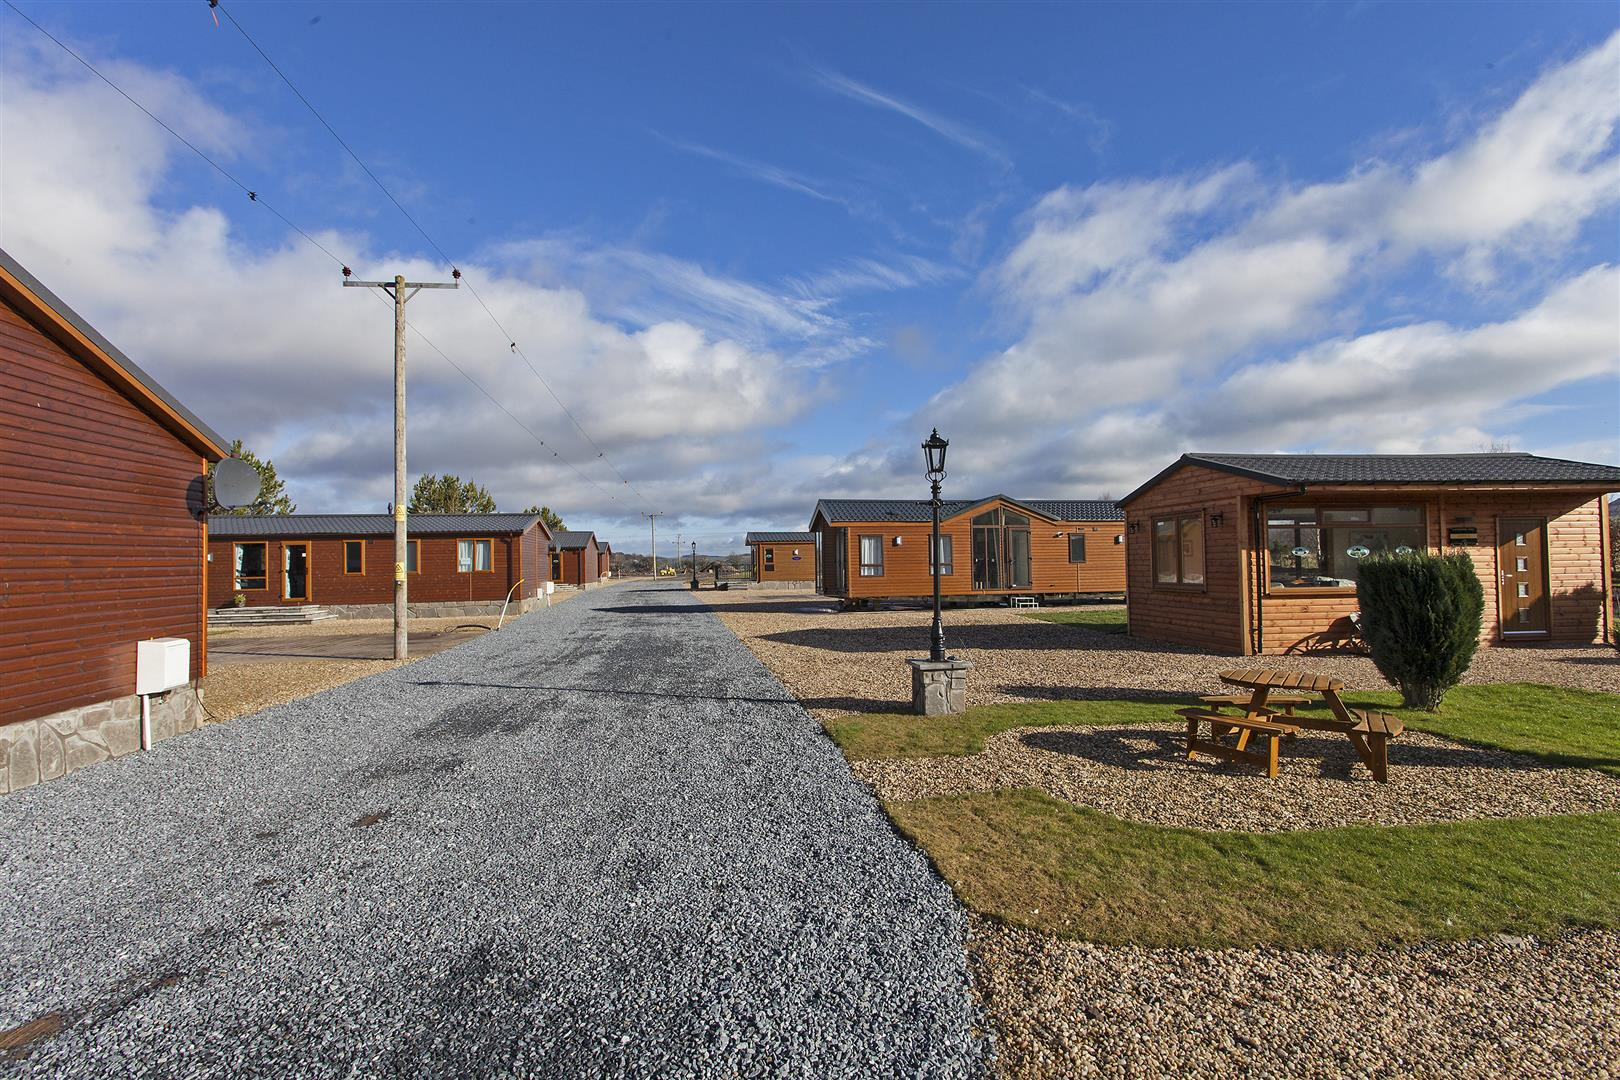 Plot 26, Pemberton Rivington Lodge, Lochmanor Lodge, Dunning, Dunning Perth, Perthshire, PH2 0QN, UK